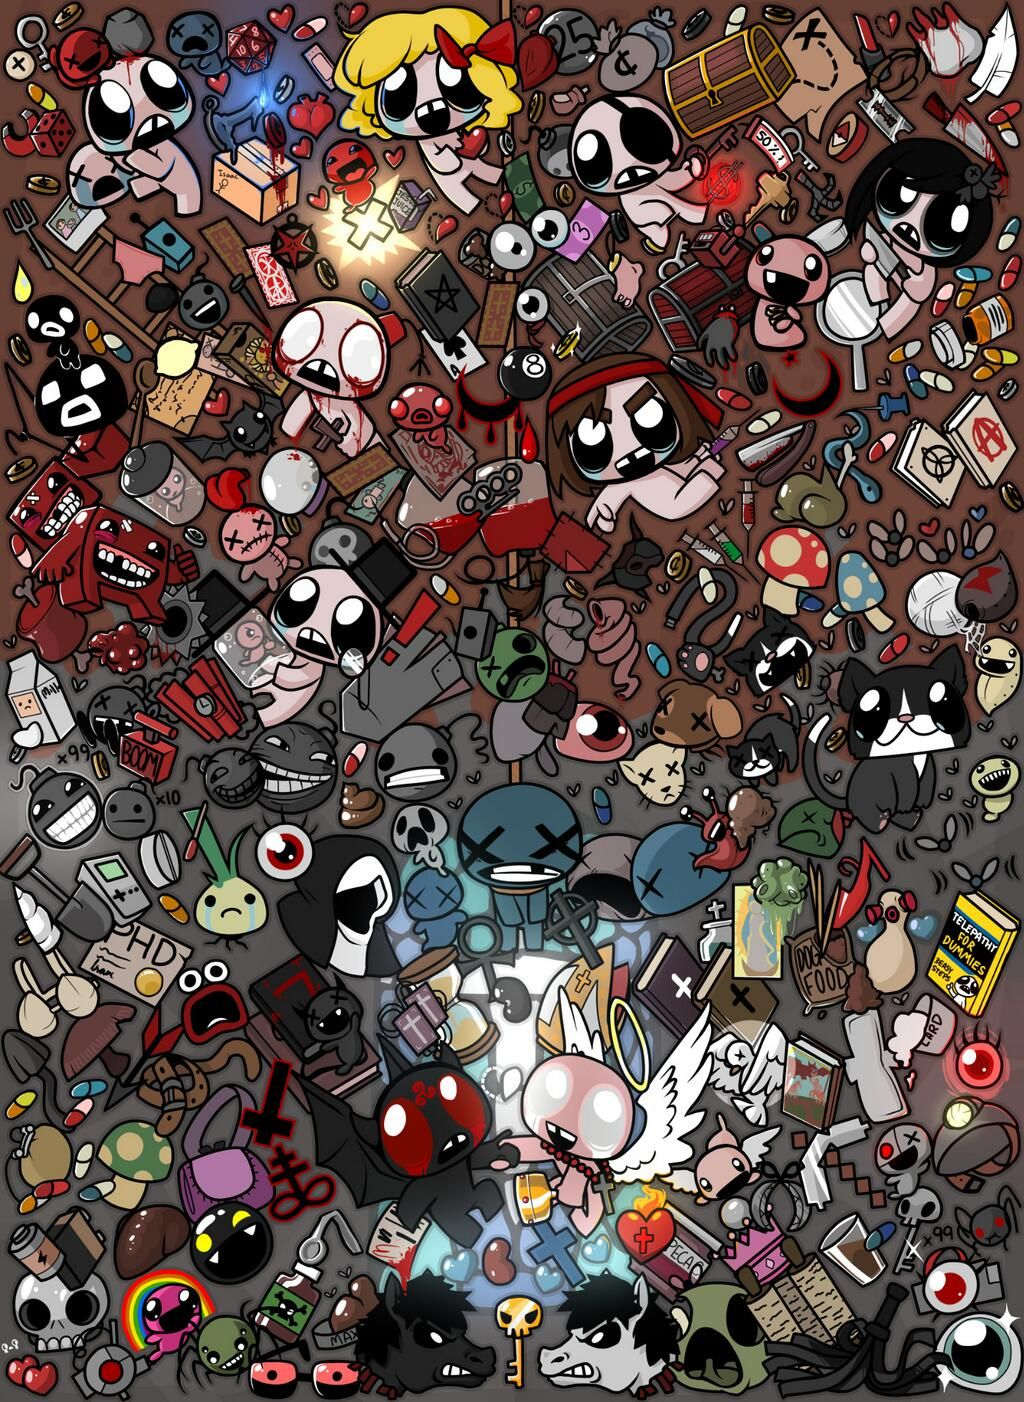 Binding Of Isaac Bedroom: The Binding Of Isaac. Such An Awesome Picture!